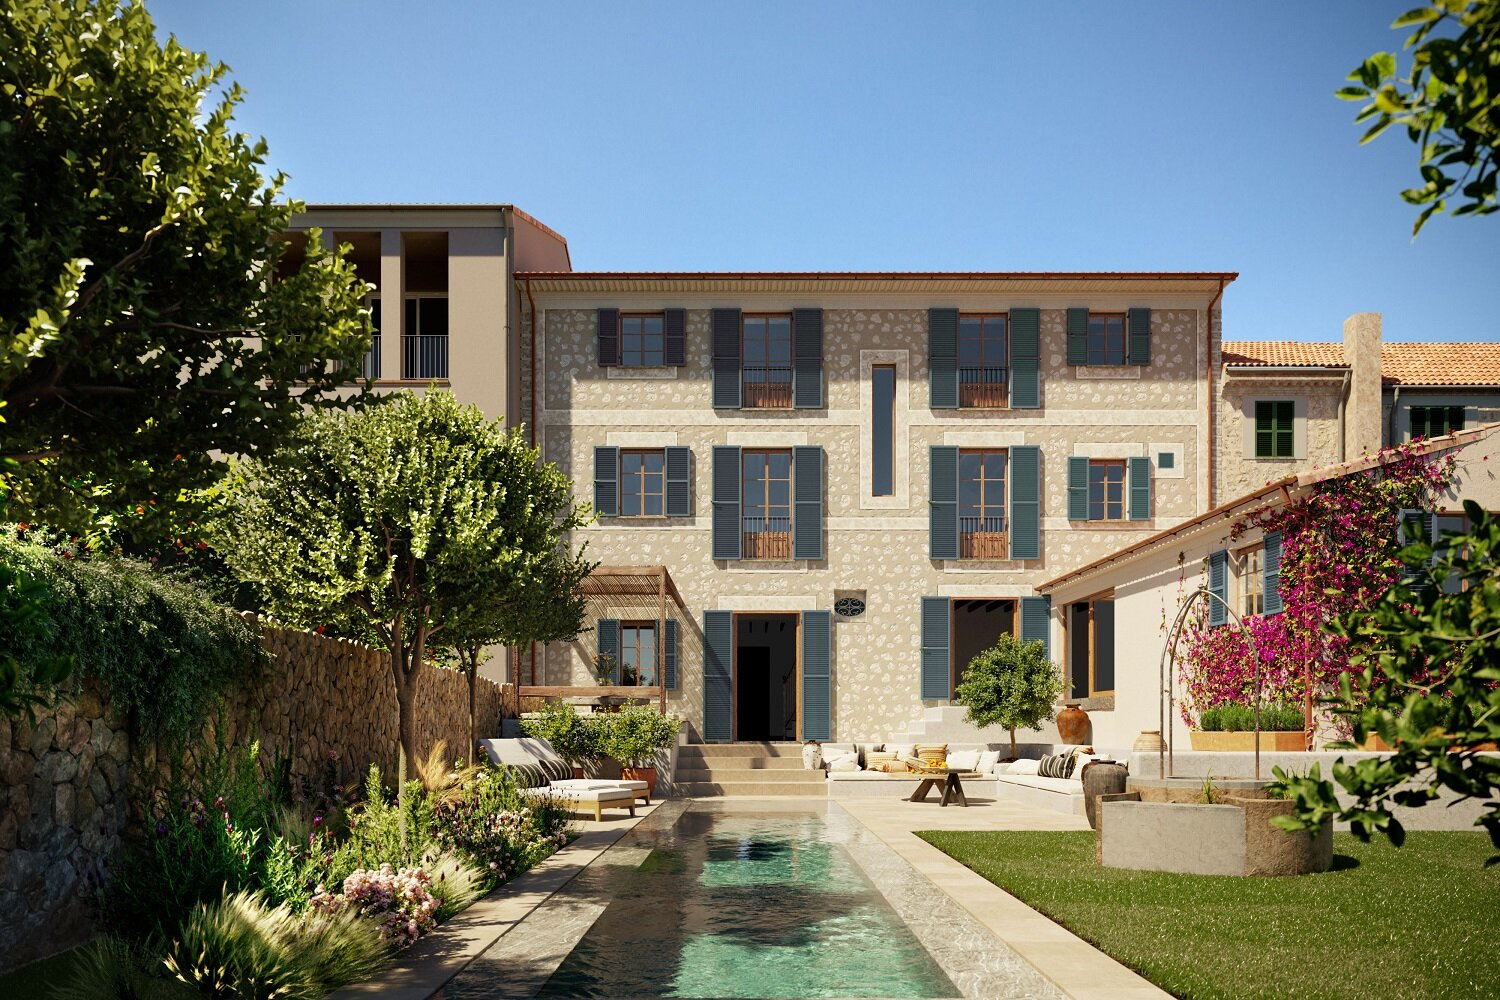 Canoneta Townhouse on Mallorca island